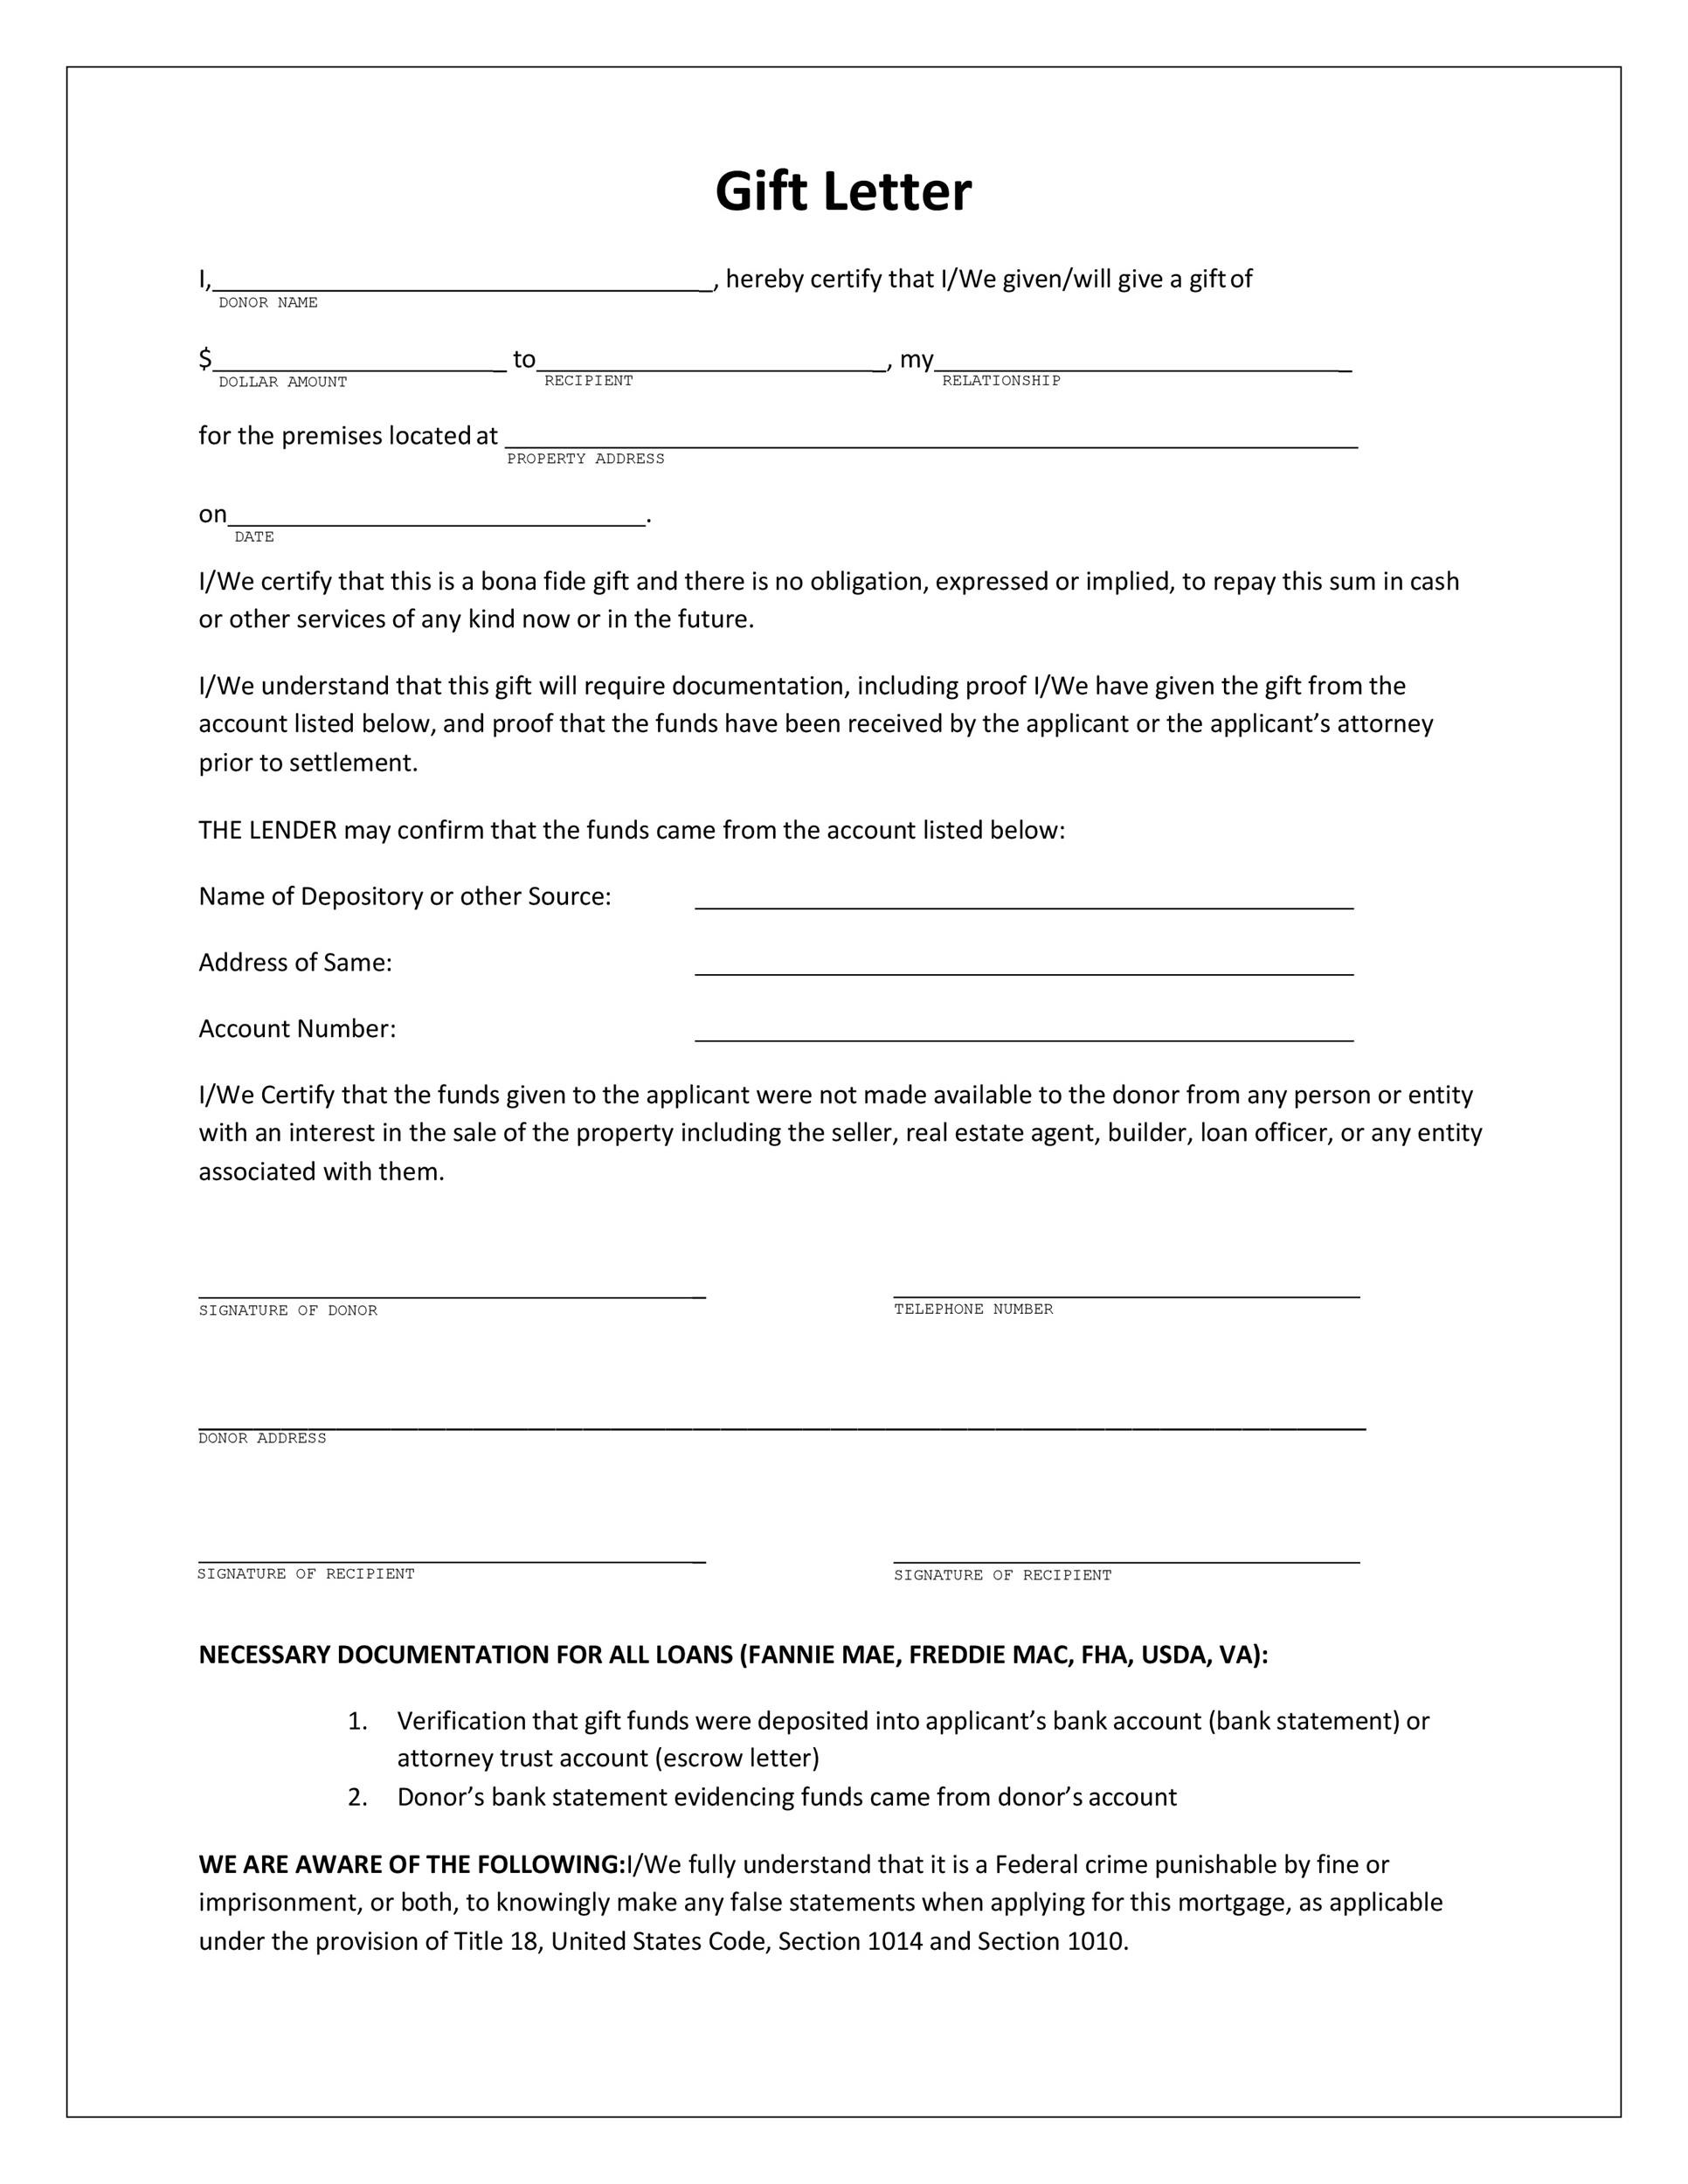 gift letter template mortgage  12 Best Gift Letter Templates (Word & PDF) ᐅ Template Lab